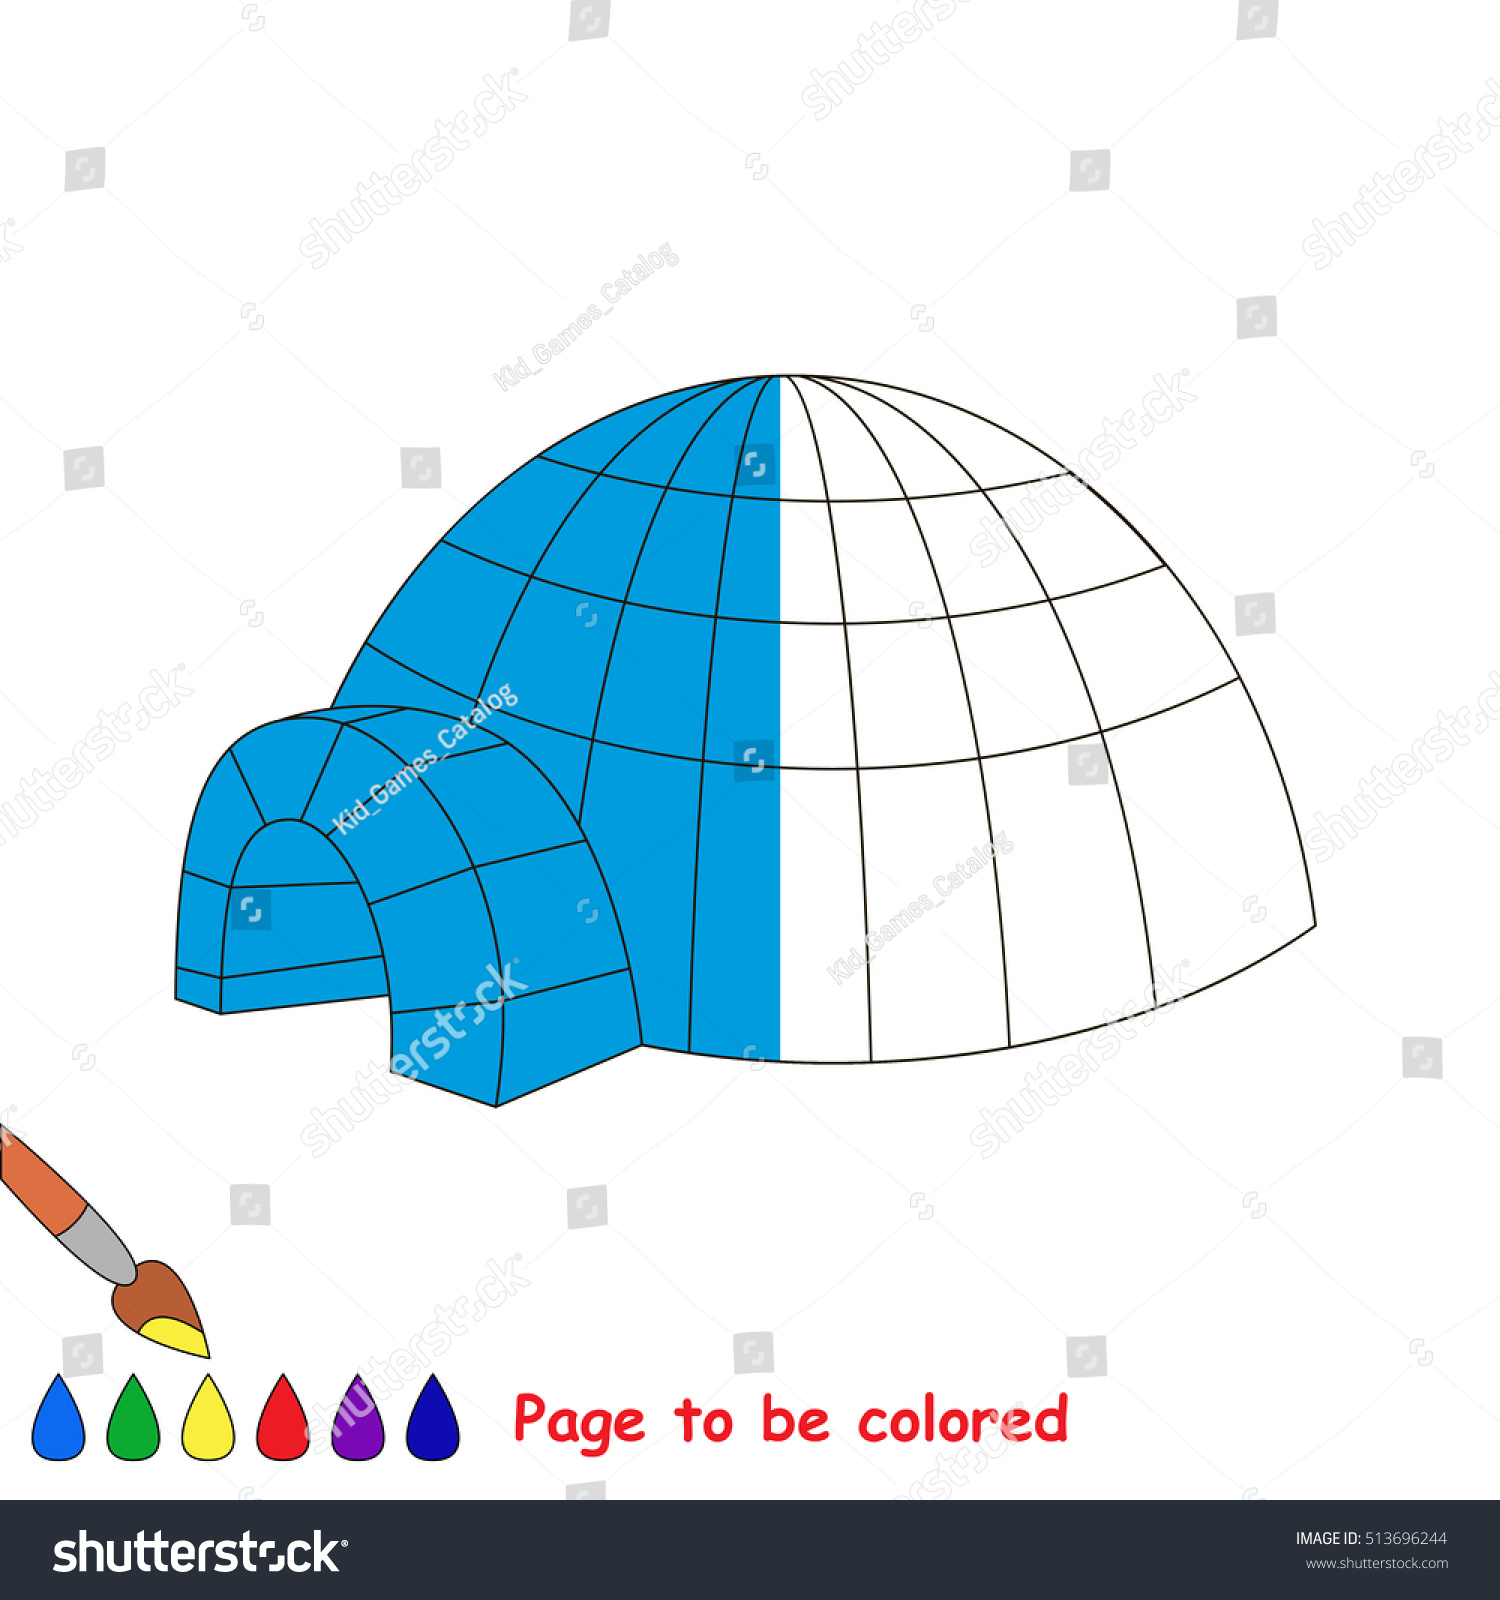 Igloo Be Colored Coloring Book Educate Stock Photo (Photo, Vector ...